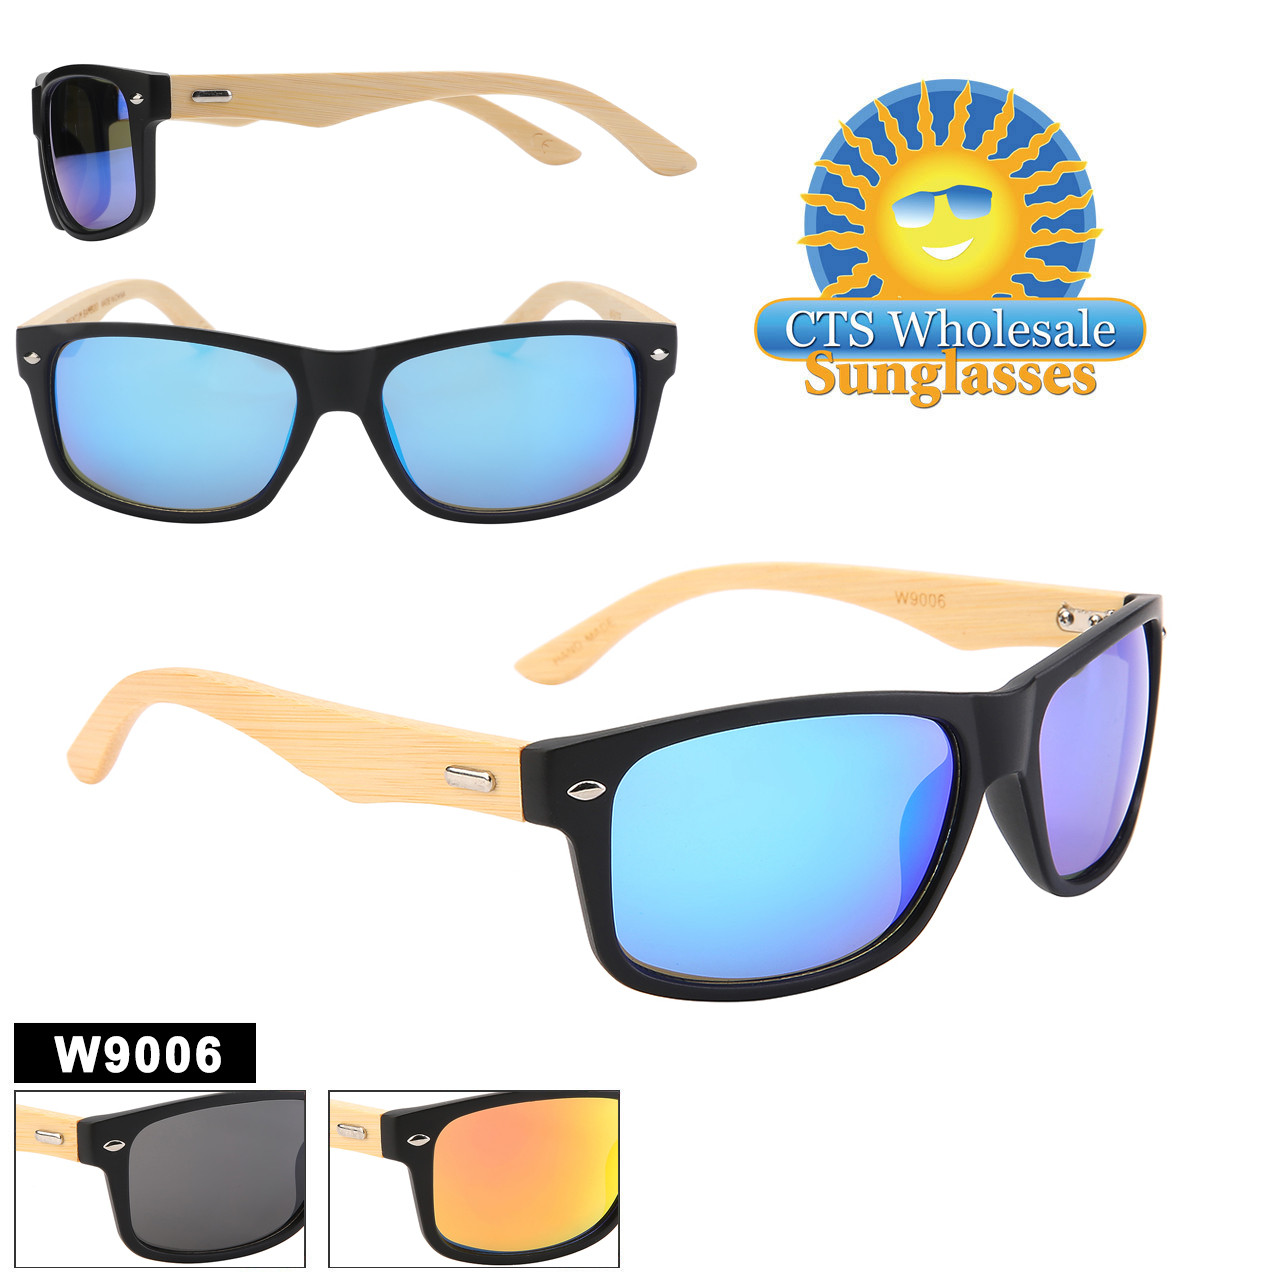 Stylish Bamboo and Recycled plastic sunglasses.  Unisex style that is perfect for everyone.